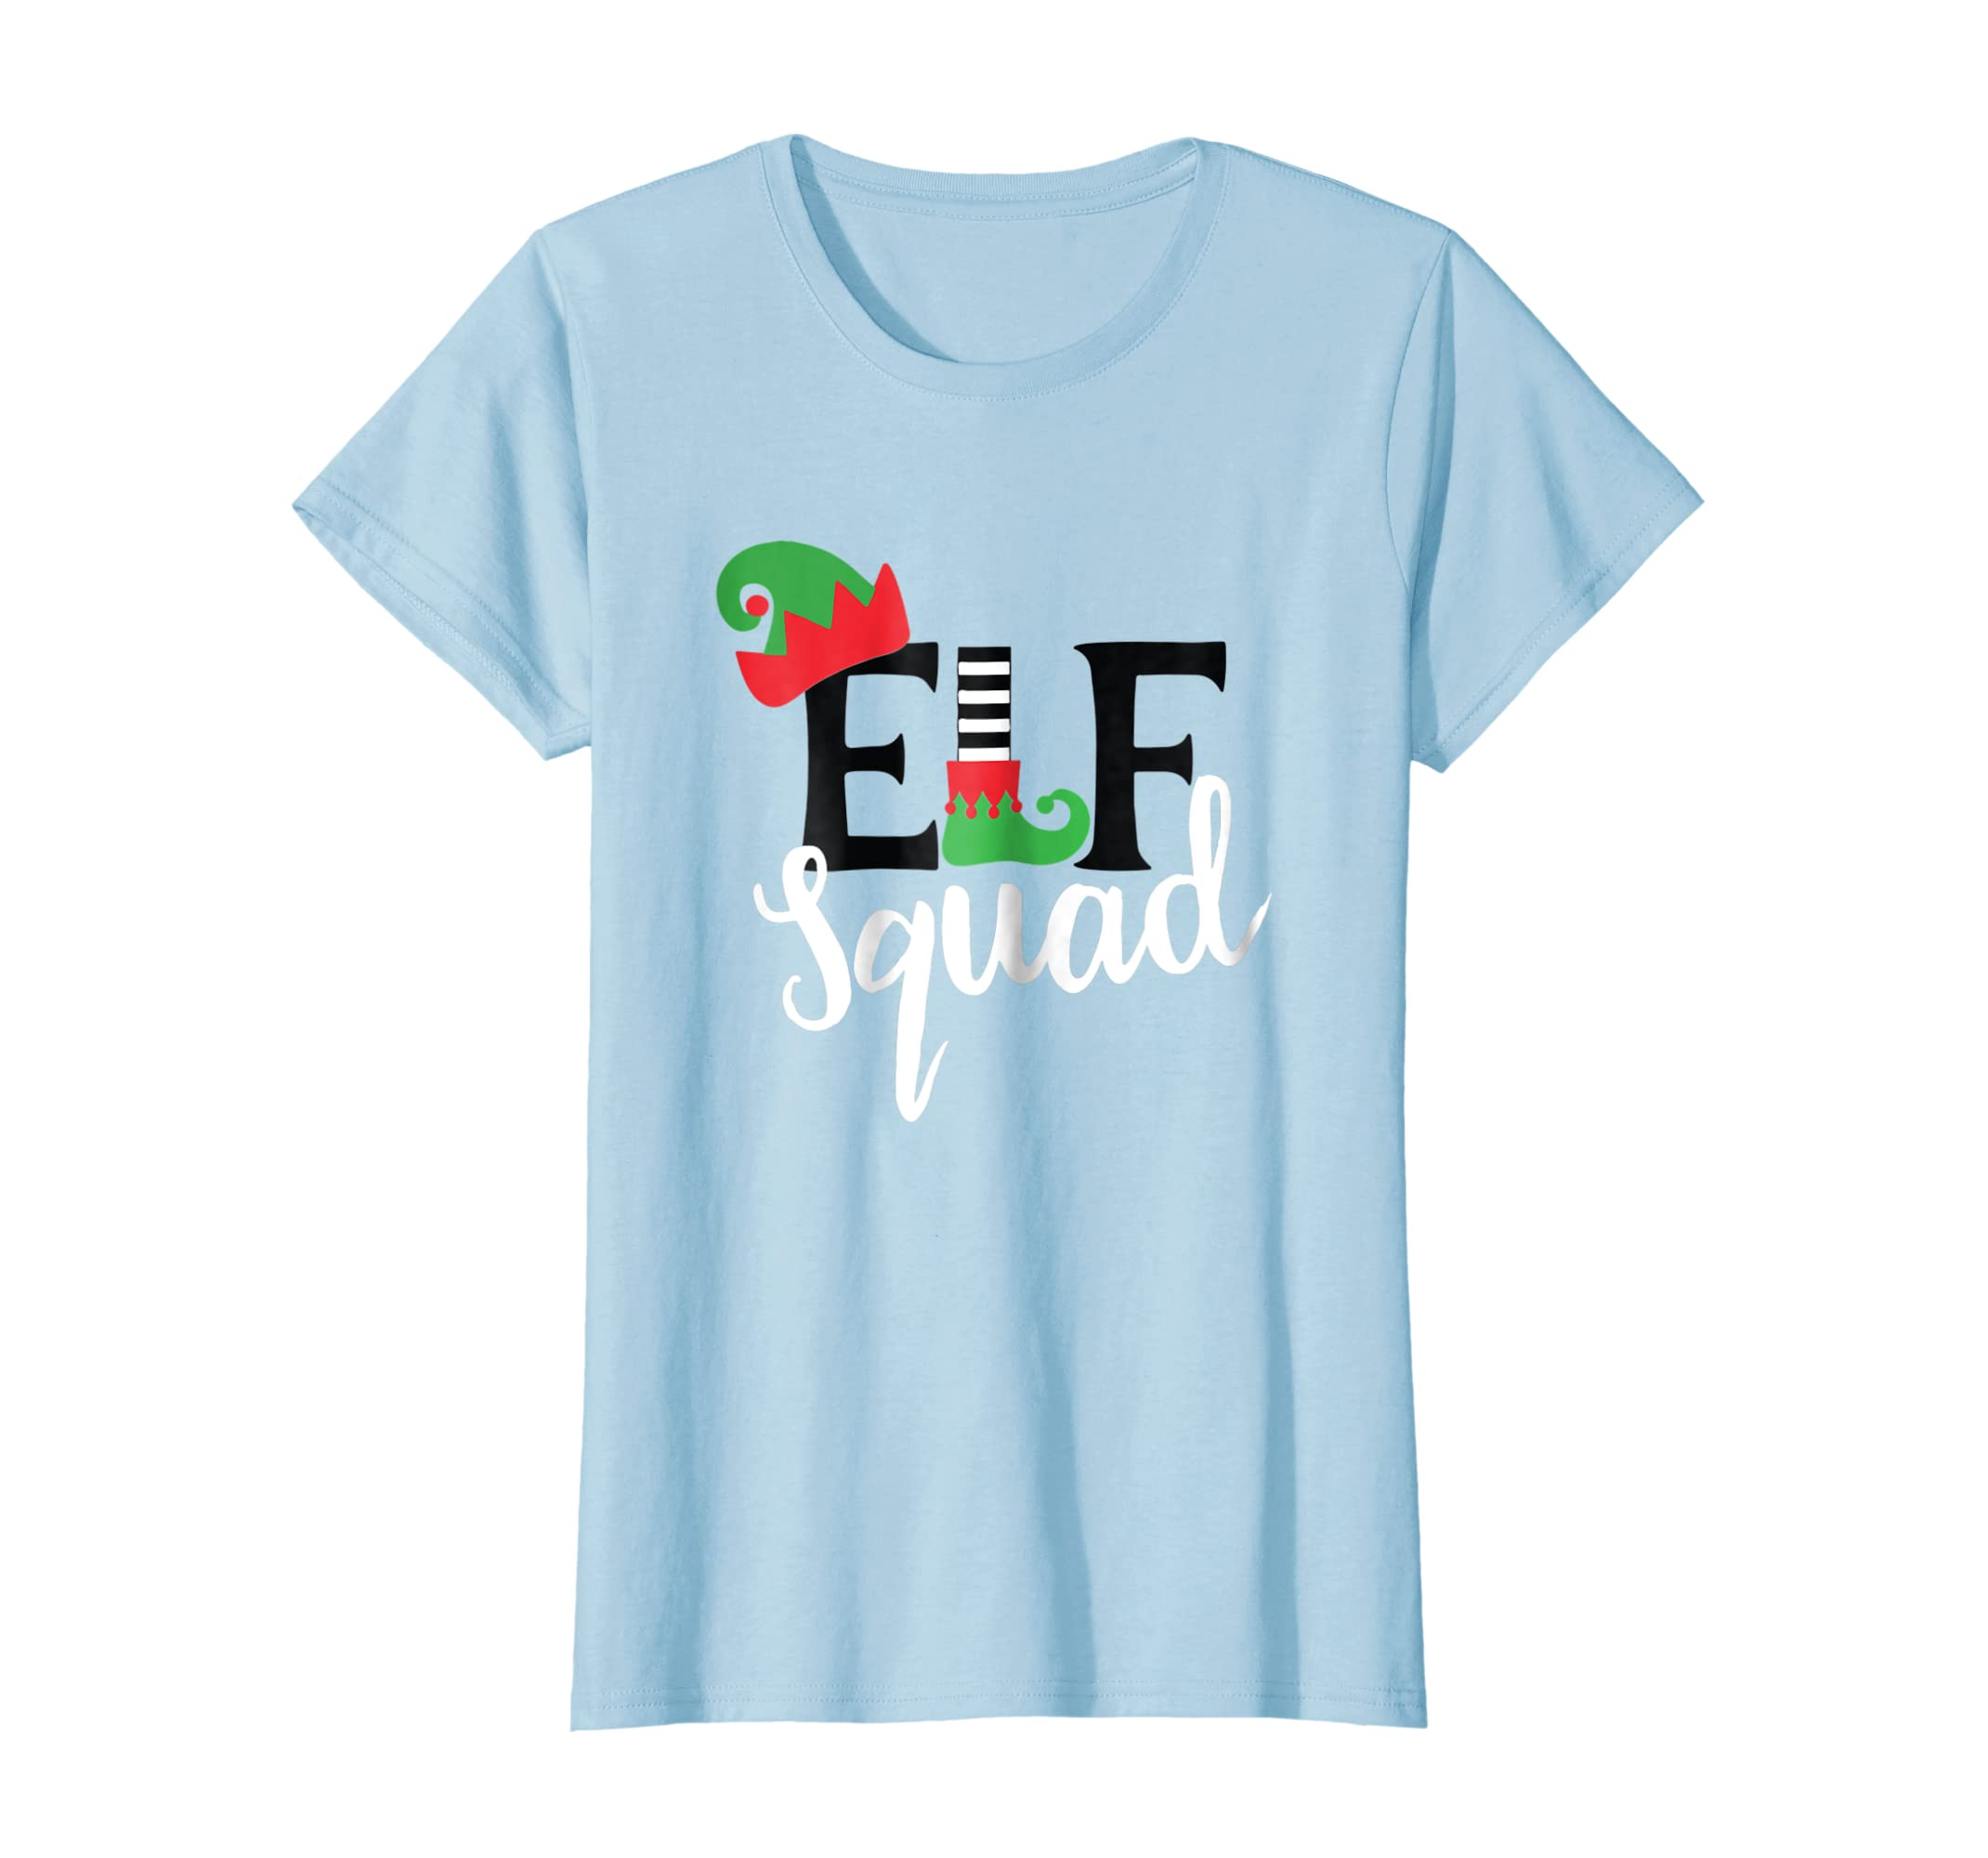 d721f62d29 Amazon.com  Family Christmas Matching T Shirts Holiday Group Elf Squad   Clothing